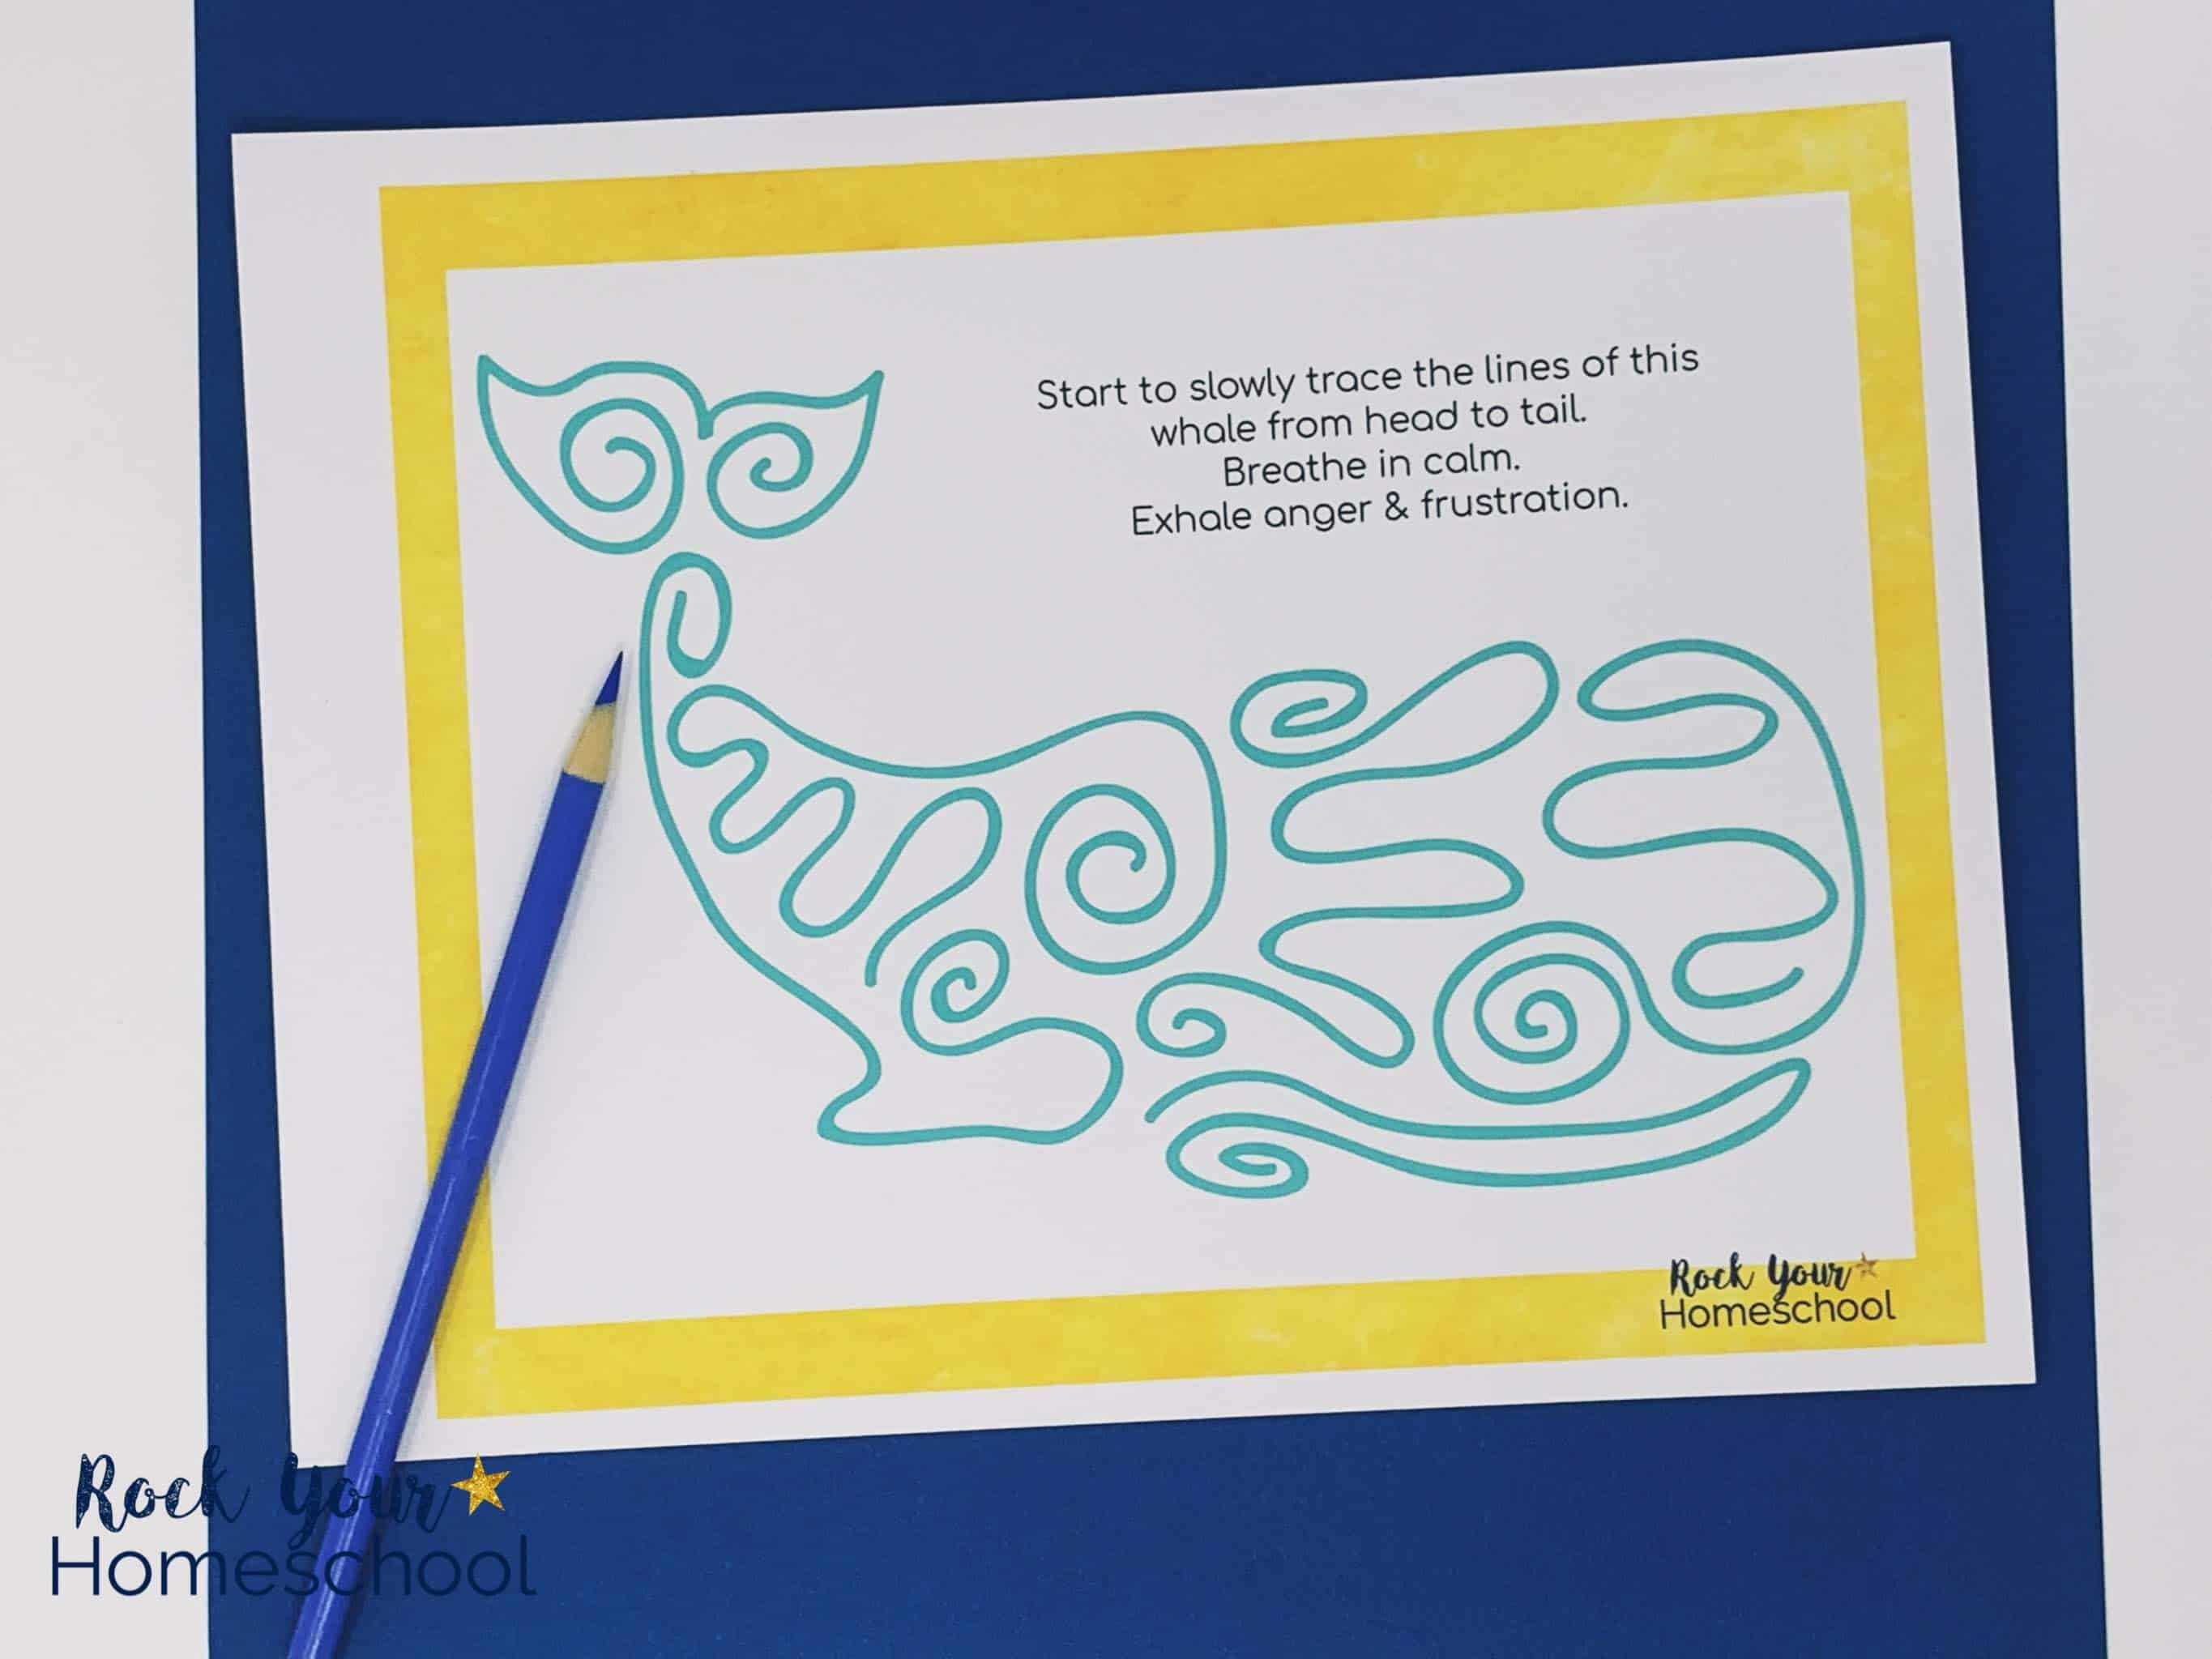 This printable mindfulness activity featuring a whale is an excellent way to practice growth mindset skills.